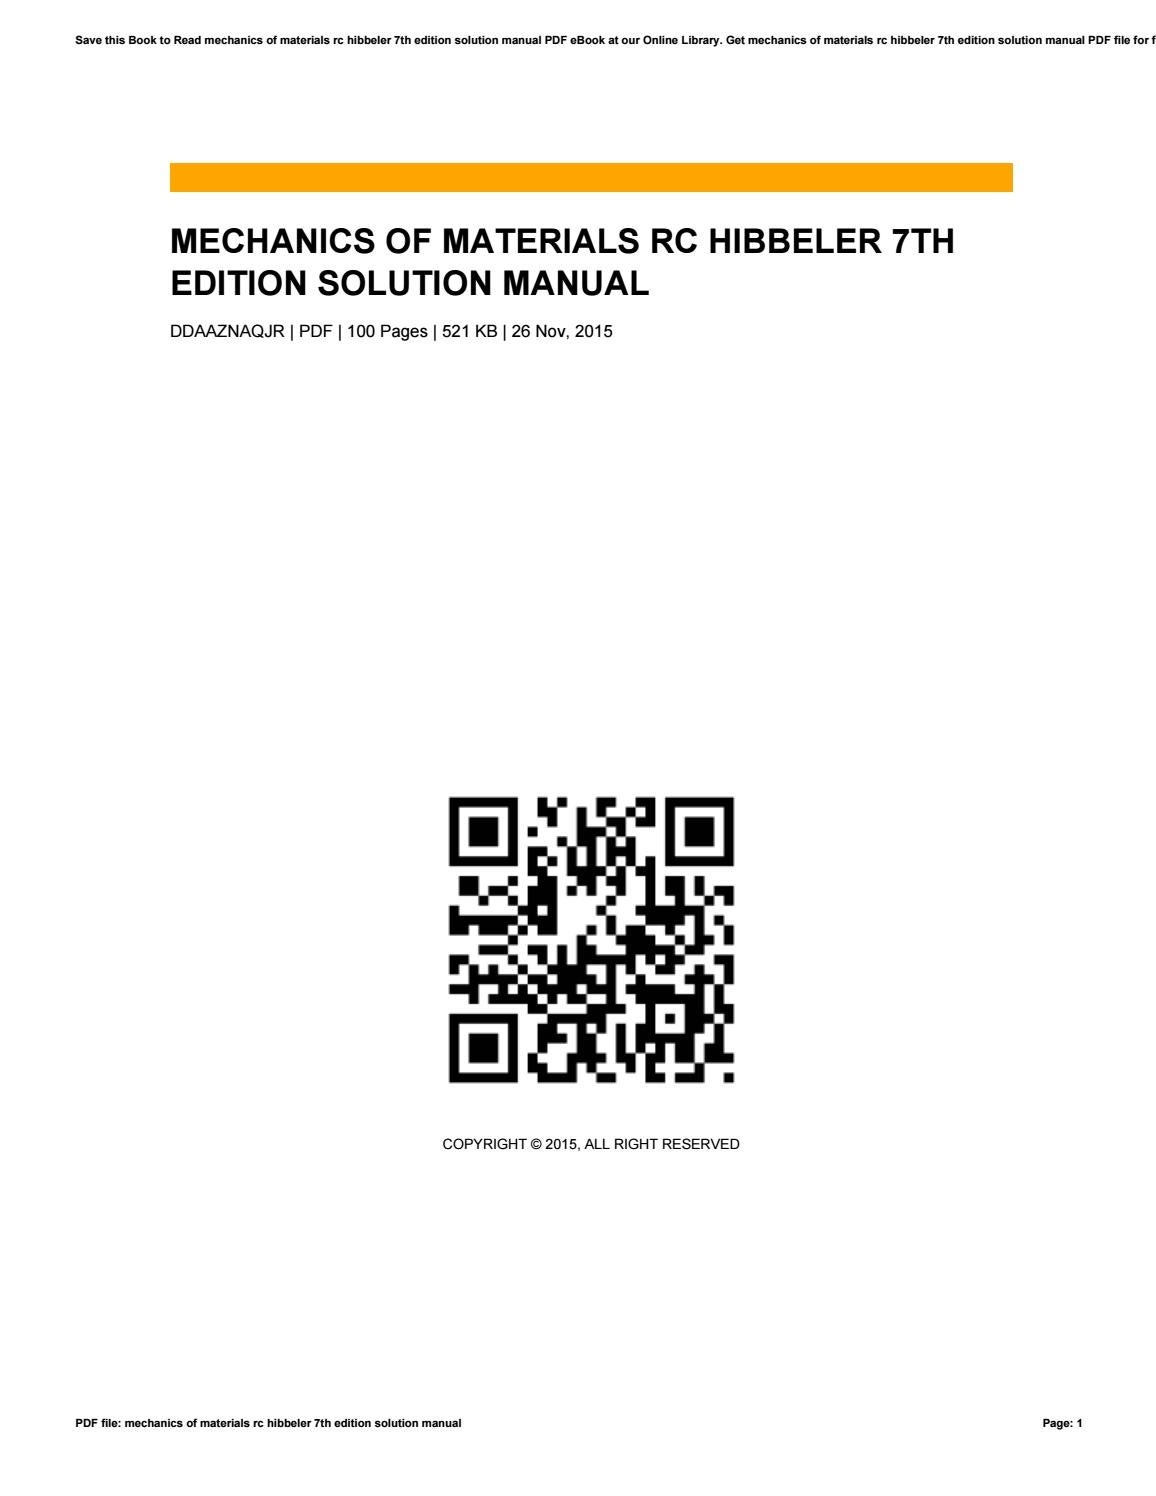 Mechanics of materials rc hibbeler 7th edition solution manual by  VictorStreeter1614 - issuu